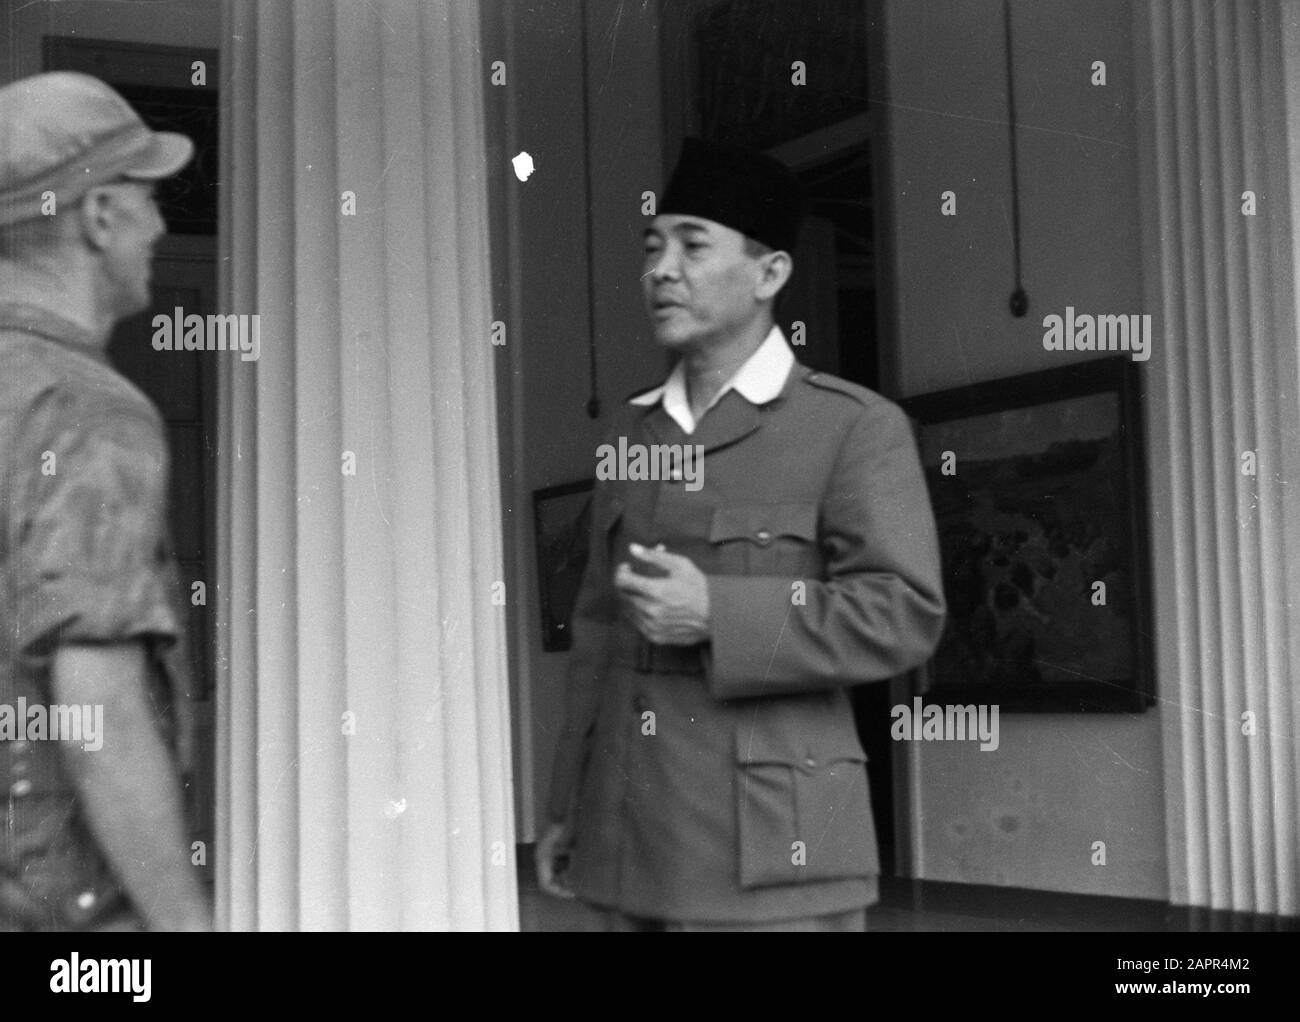 Capture Ir Soekarno Lieutenant Vosveld Reports To President Soekarno To Make This Announcement Of The Fact